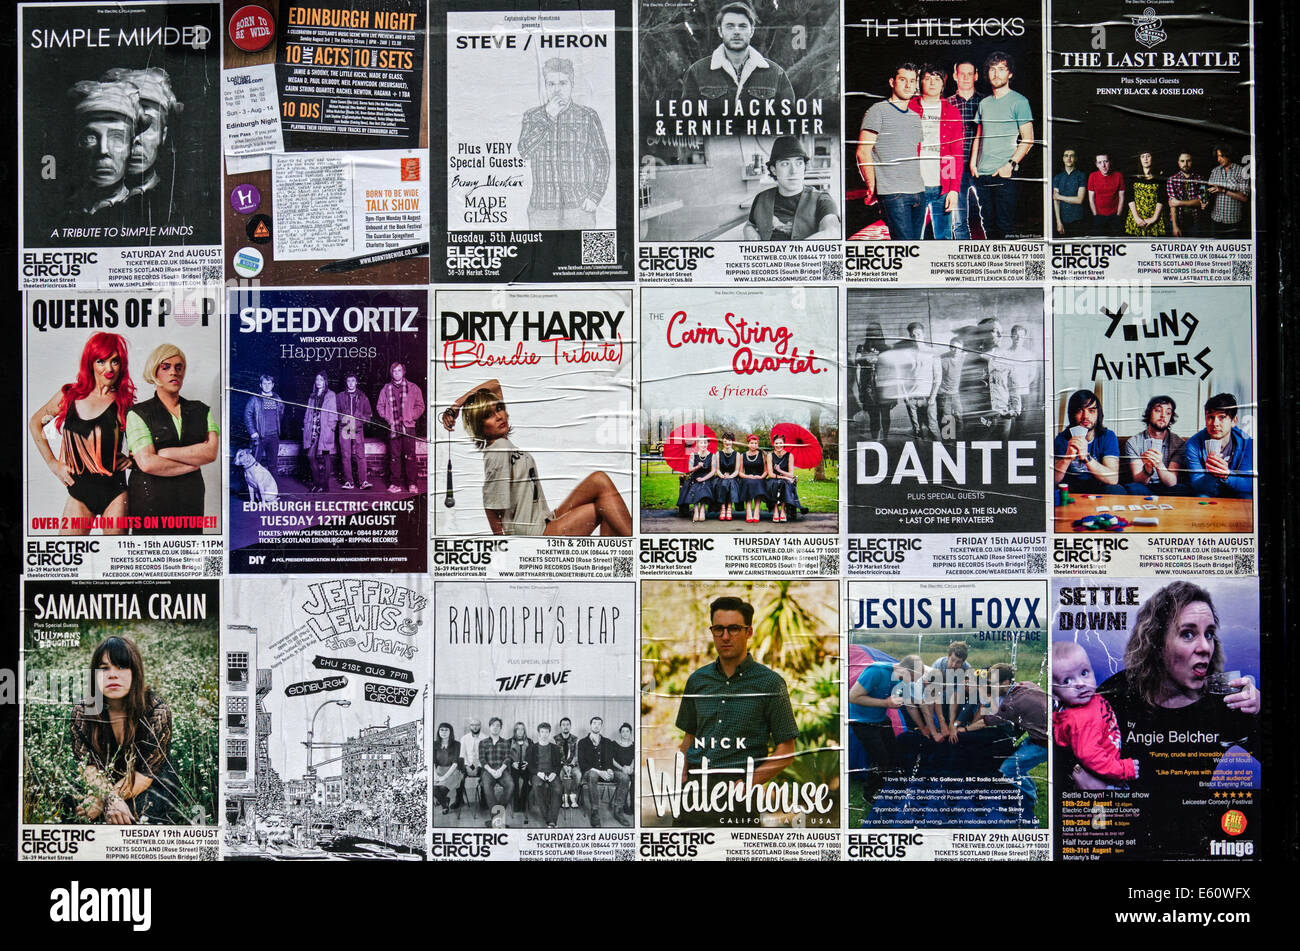 Posters advertising upcoming shows at the Electric Circus in Market Street, Edinburgh. - Stock Image